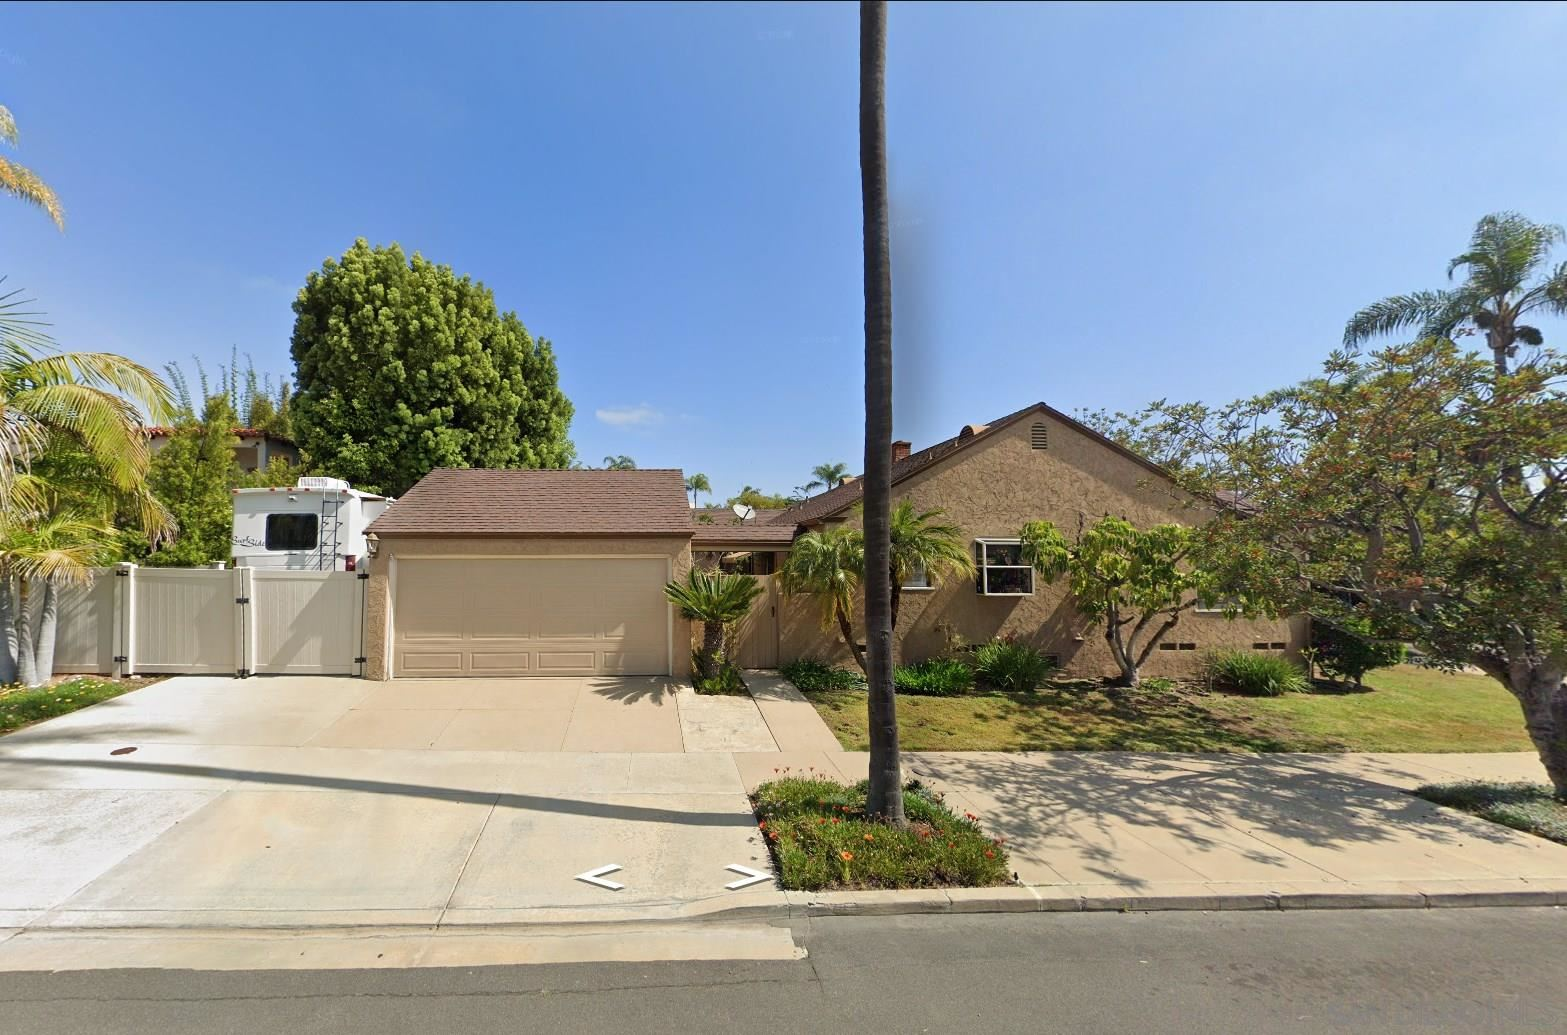 Photo for 4197 Rochester Rd, San Diego, CA 92116 (MLS # 210004121)